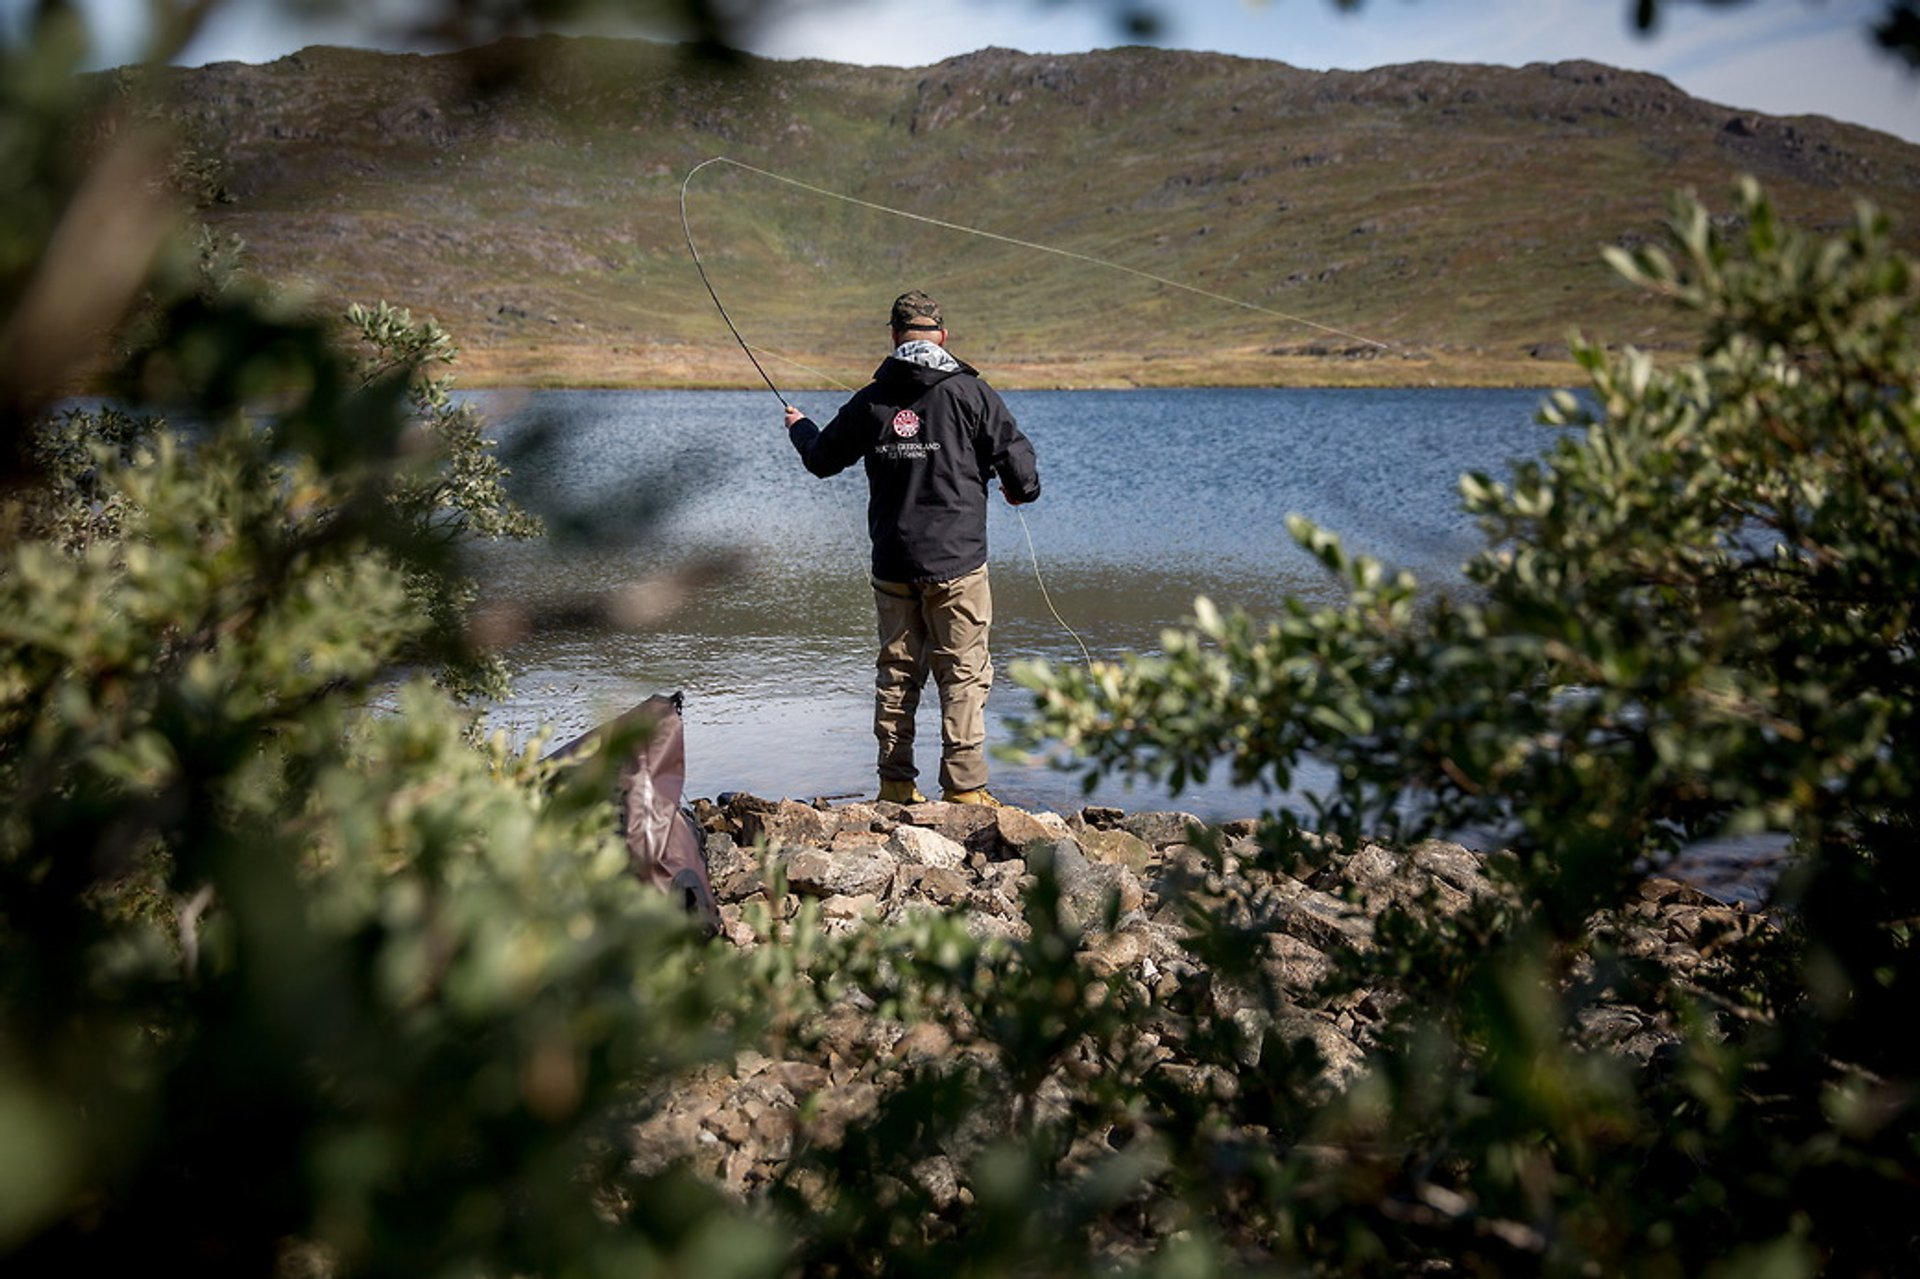 Fly fishing in the south of Greenland 2019